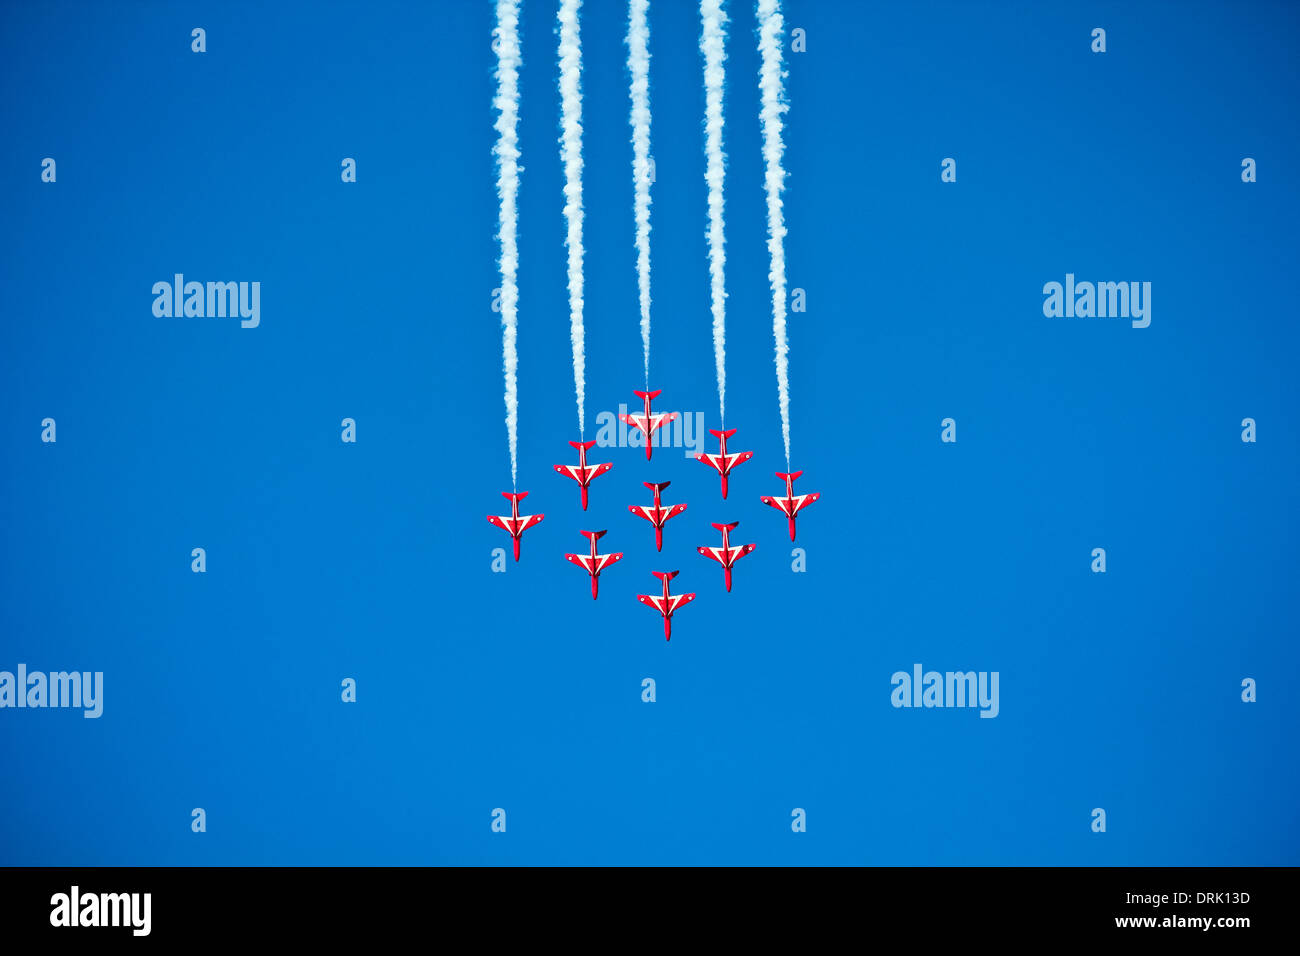 RAF, Red Arrows in Kuwait. - Stock Image